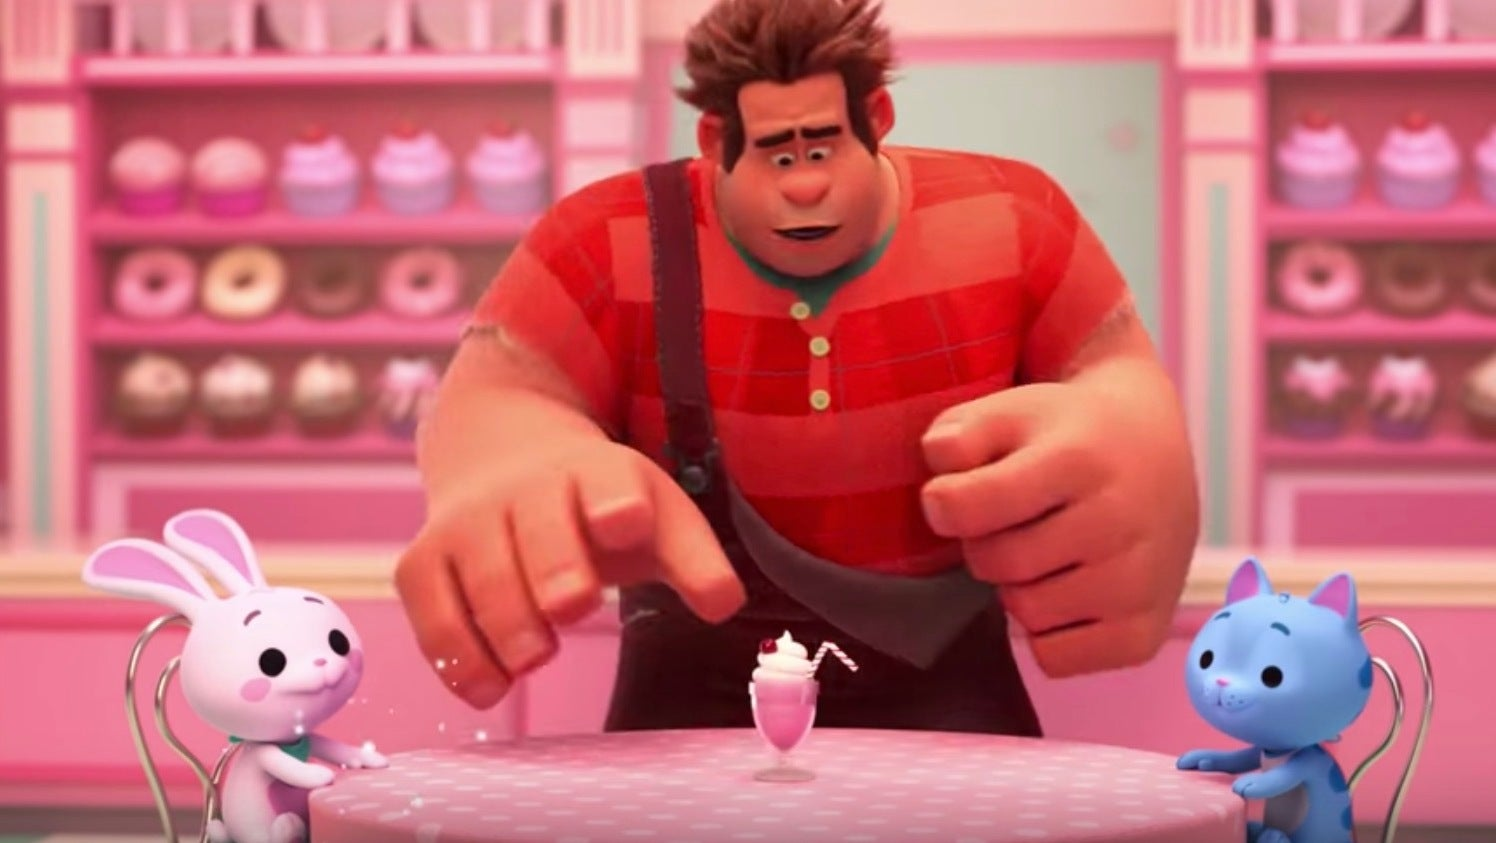 Ralph Breaks The Internet's Post-Credit Scenes Came With Some Major Hurdles